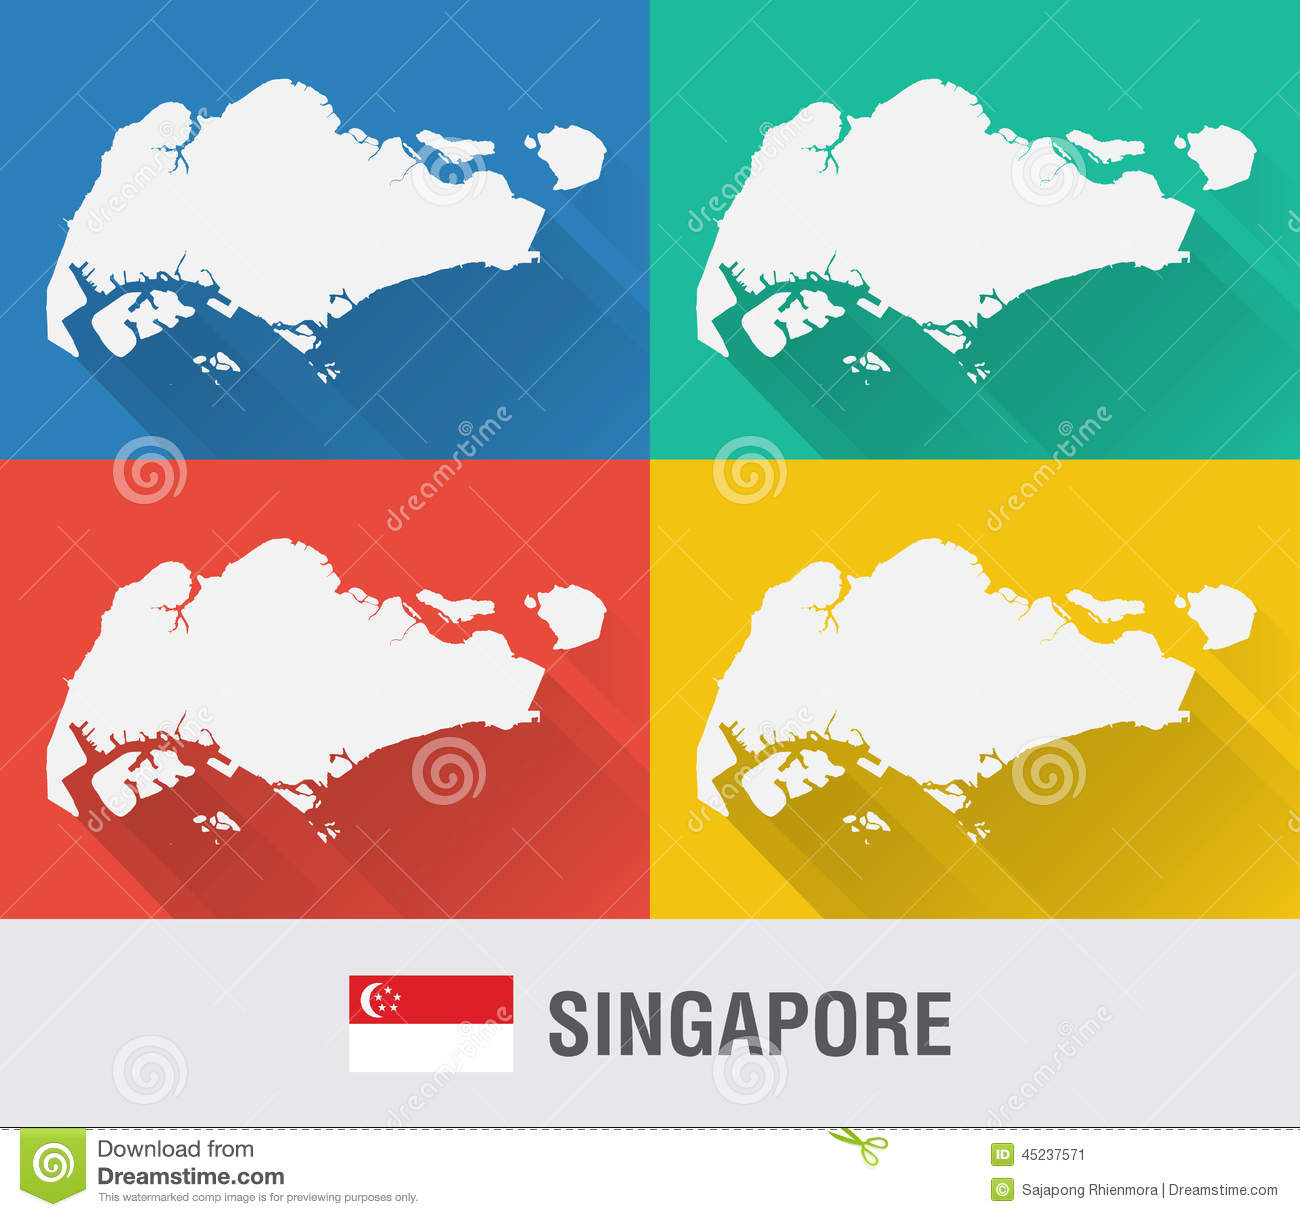 Singapore World Map In Flat Style With 4 Colors. Stock Image - Image ...